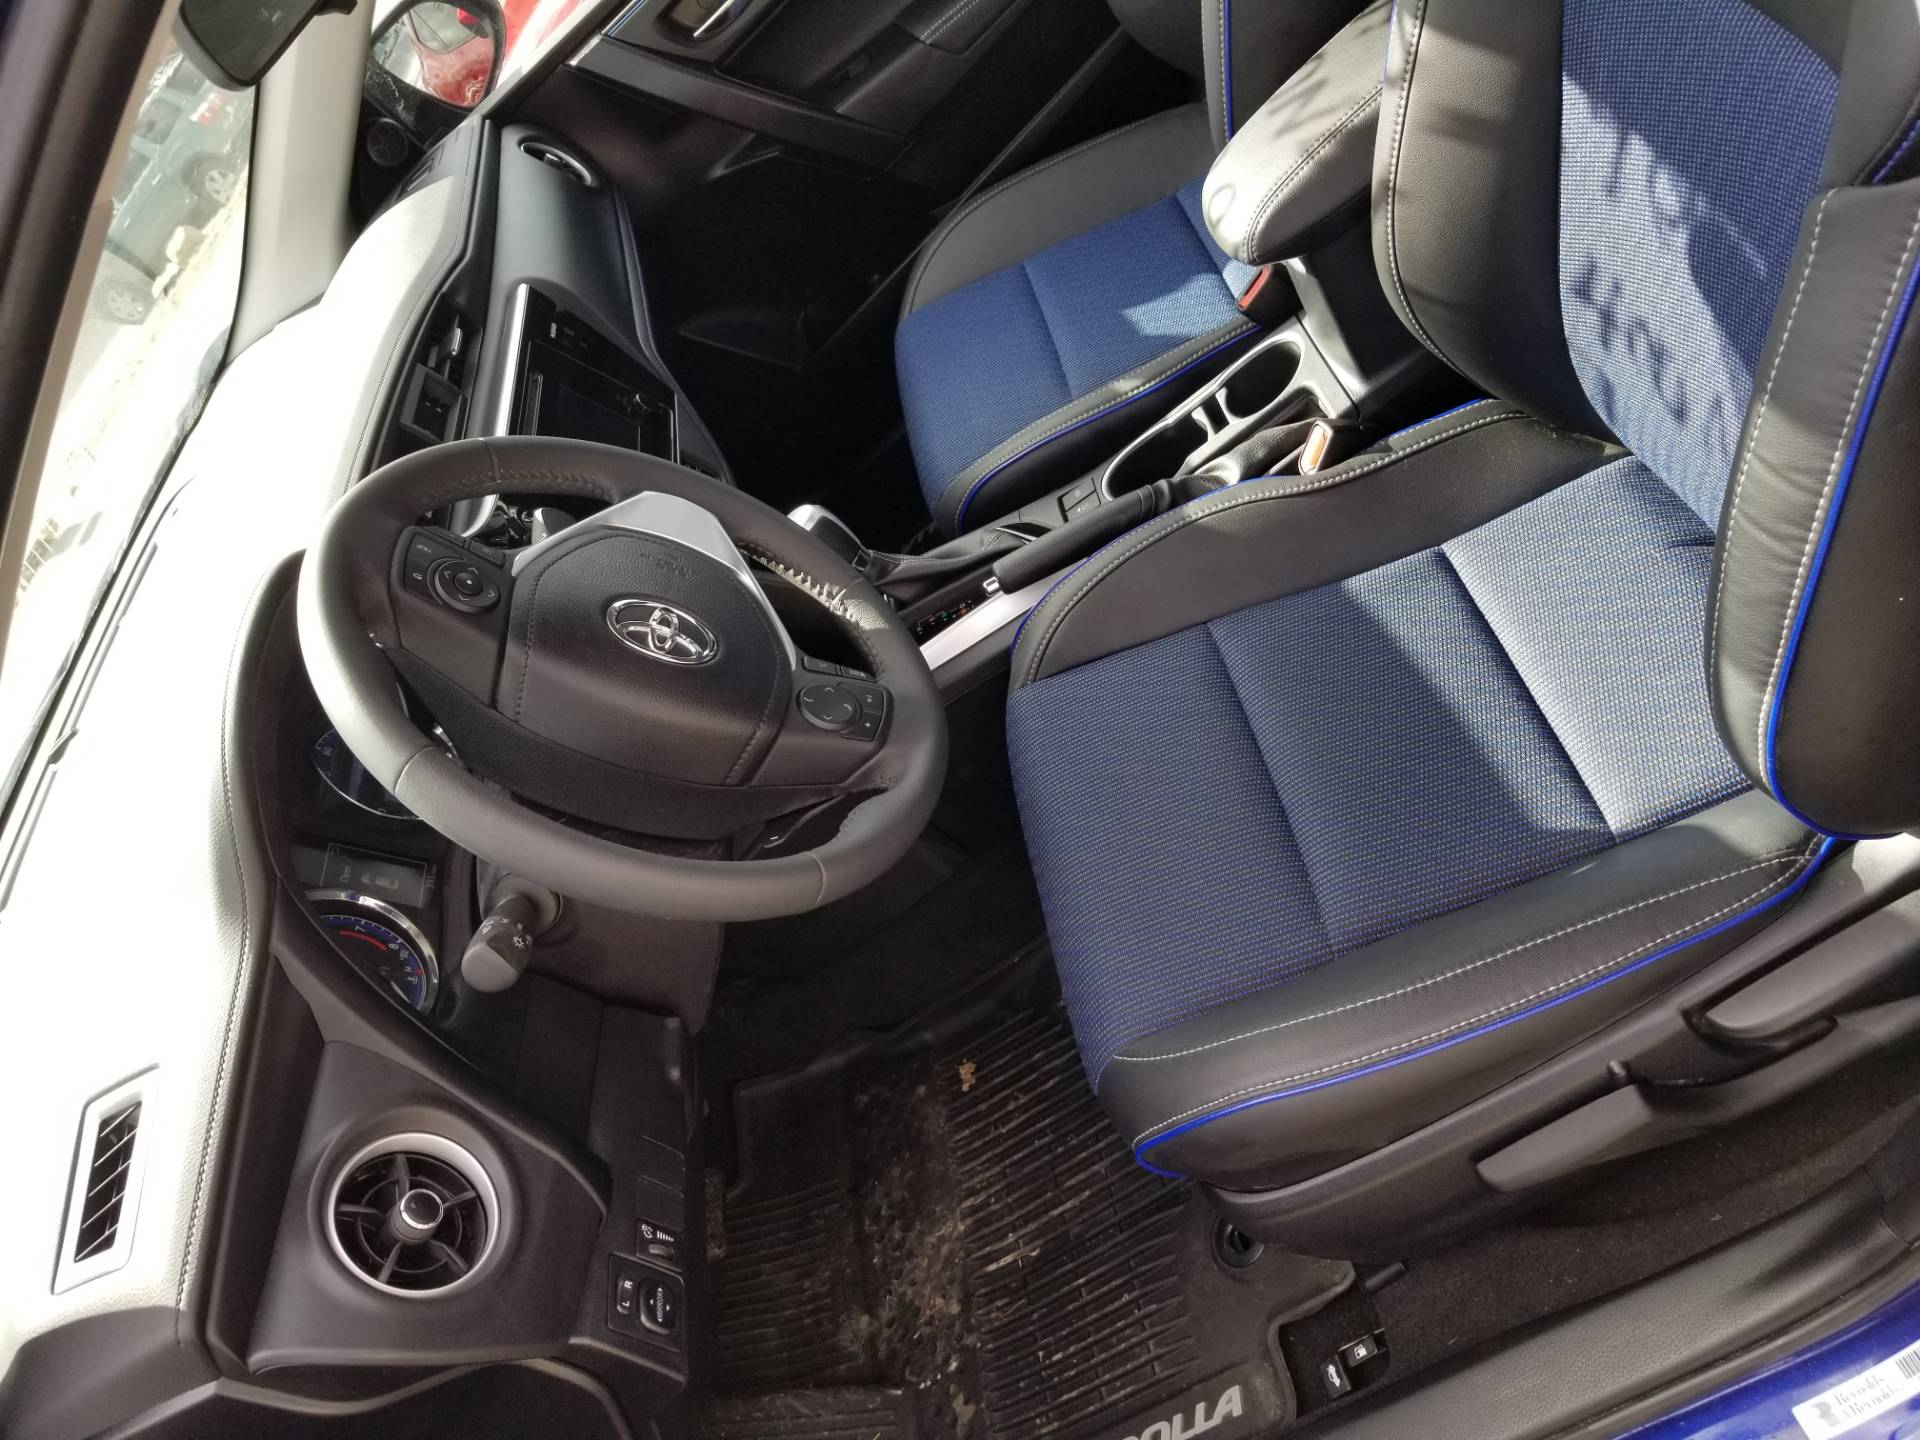 2017 Toyota Corrola SE only 400 miles in Harmony, Pennsylvania - Photo 10